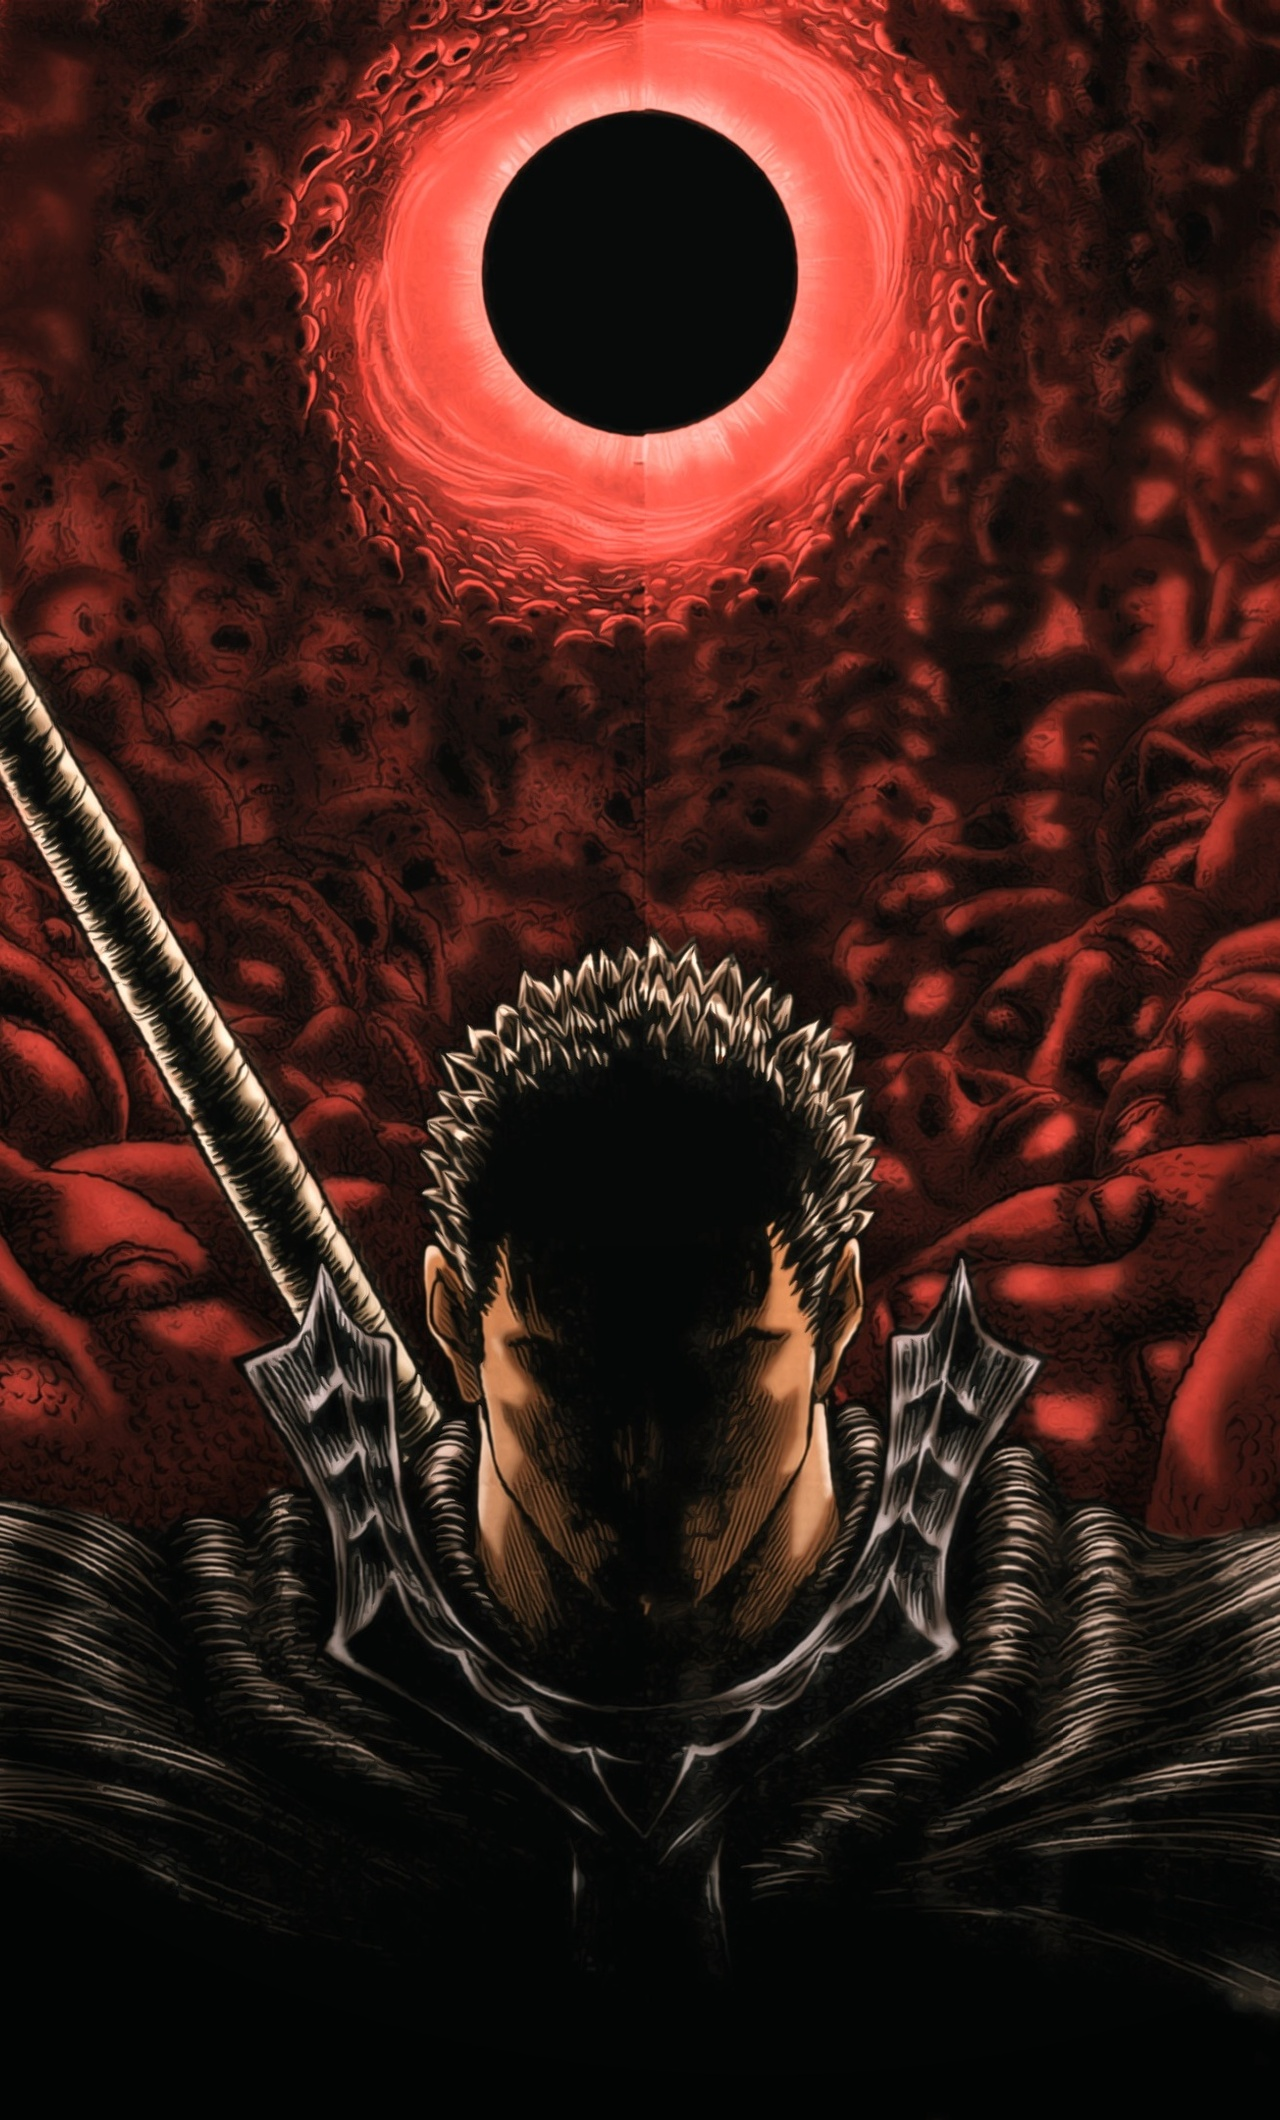 1280x2120 Berserk Iphone 6 Hd 4k Wallpapers Images